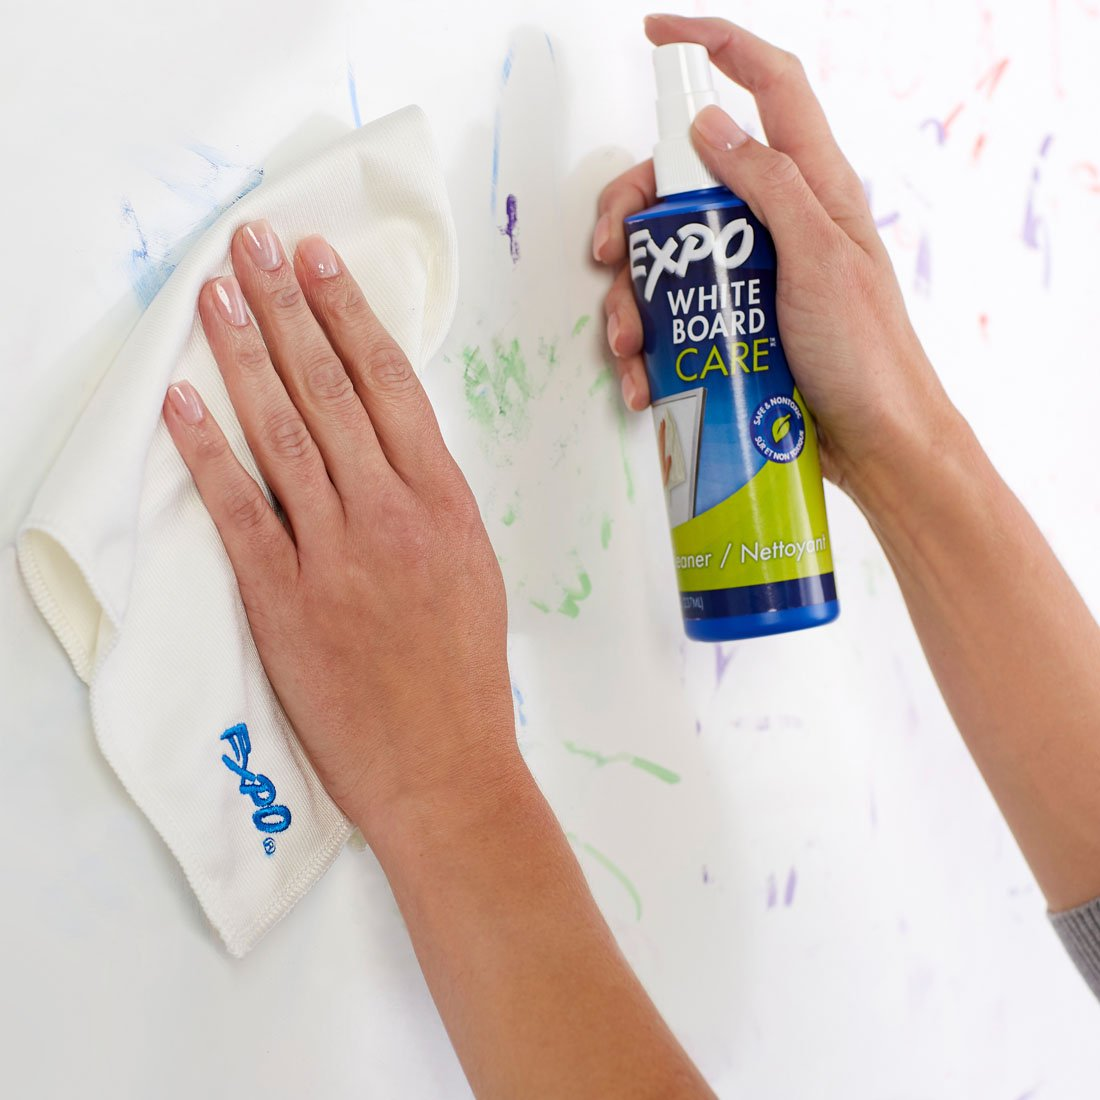 using-spray-and-cloth-on-whiteboard-to-remove-marker.jpg